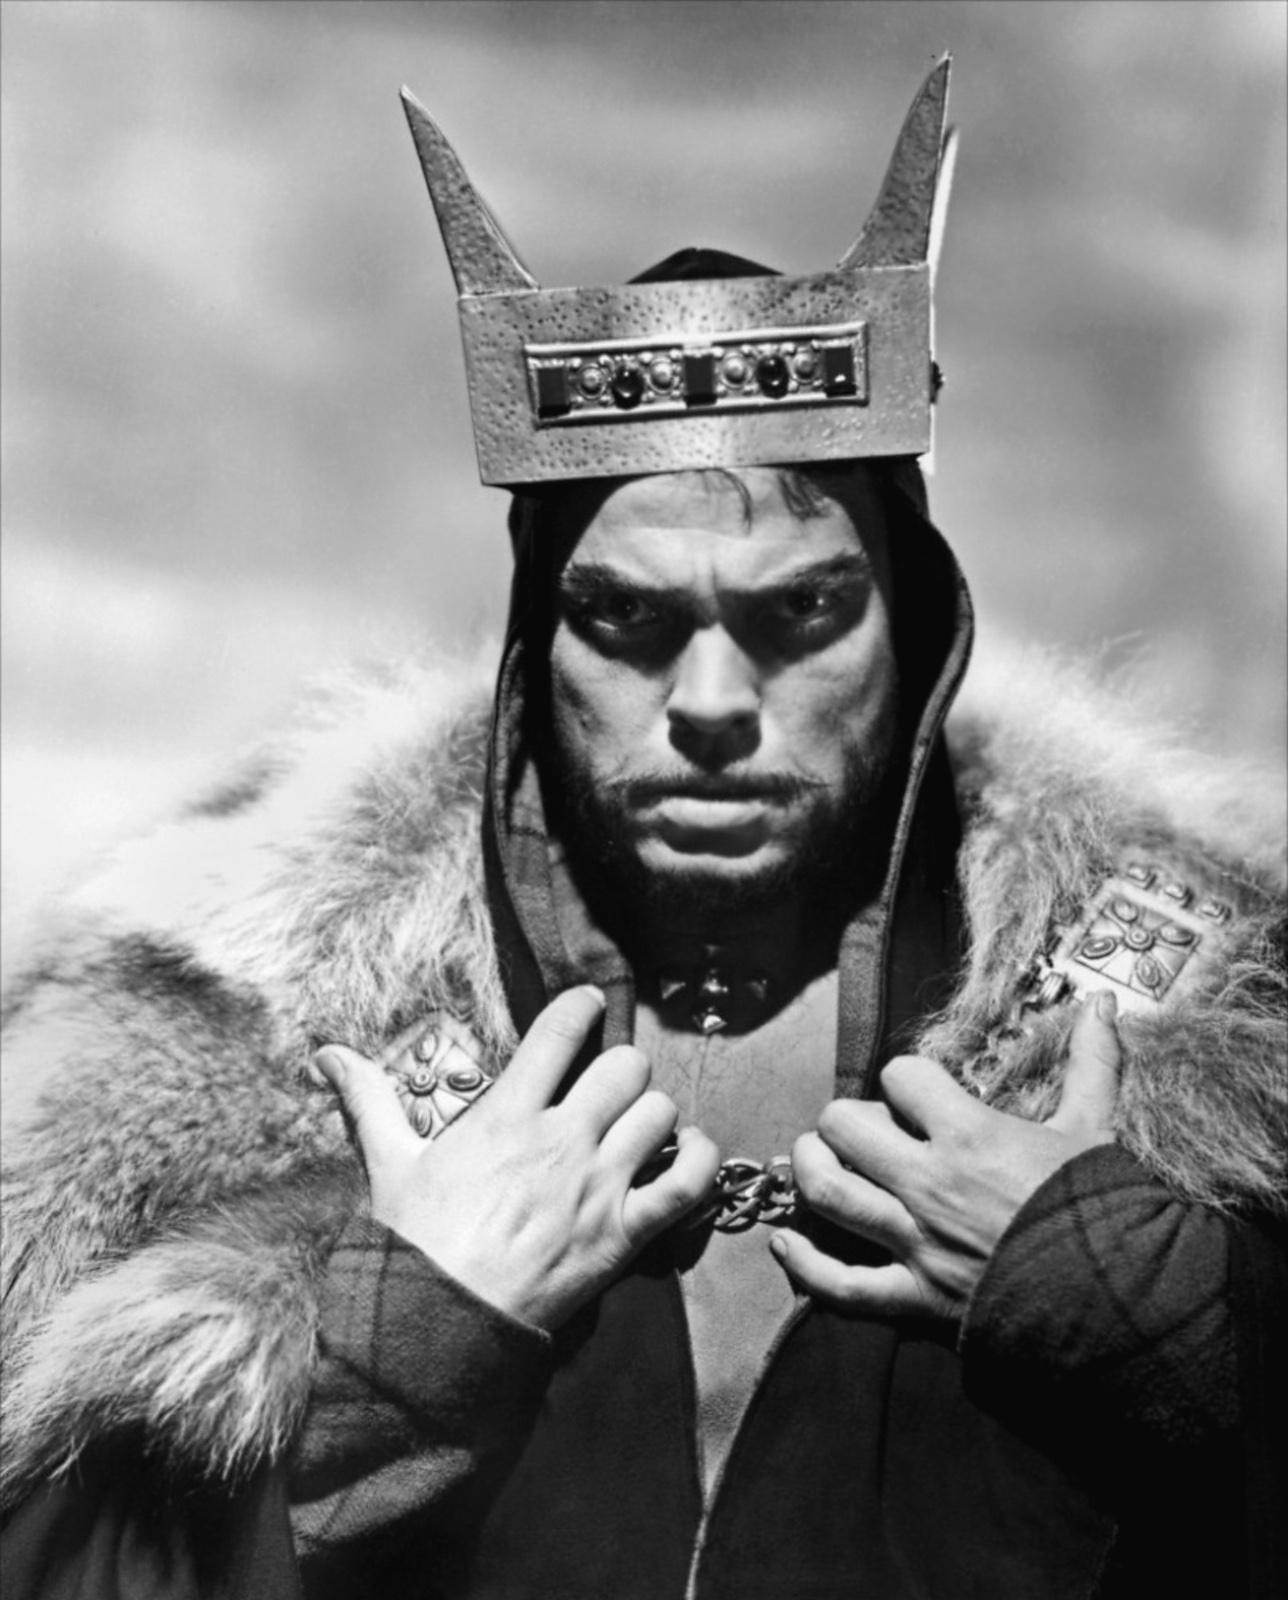 Annex - Welles, Orson (Macbeth)_06.jpg (1288×1600)